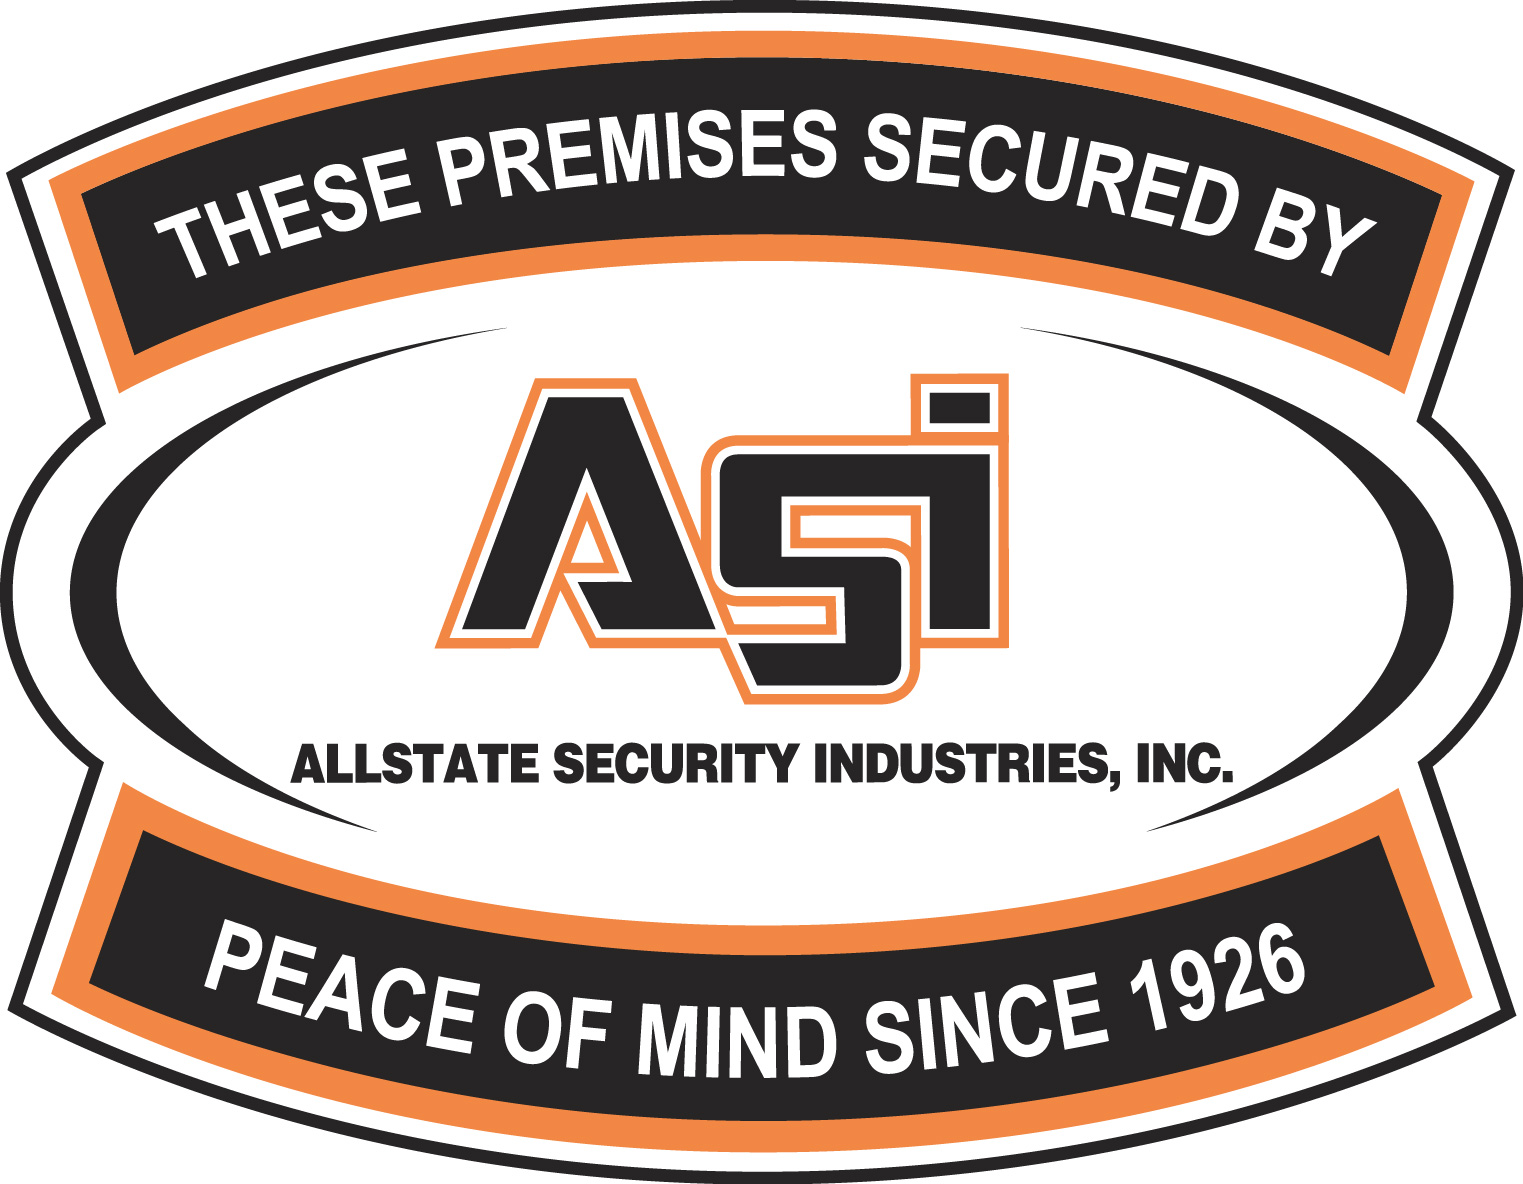 Allstate Security Industries, Inc.